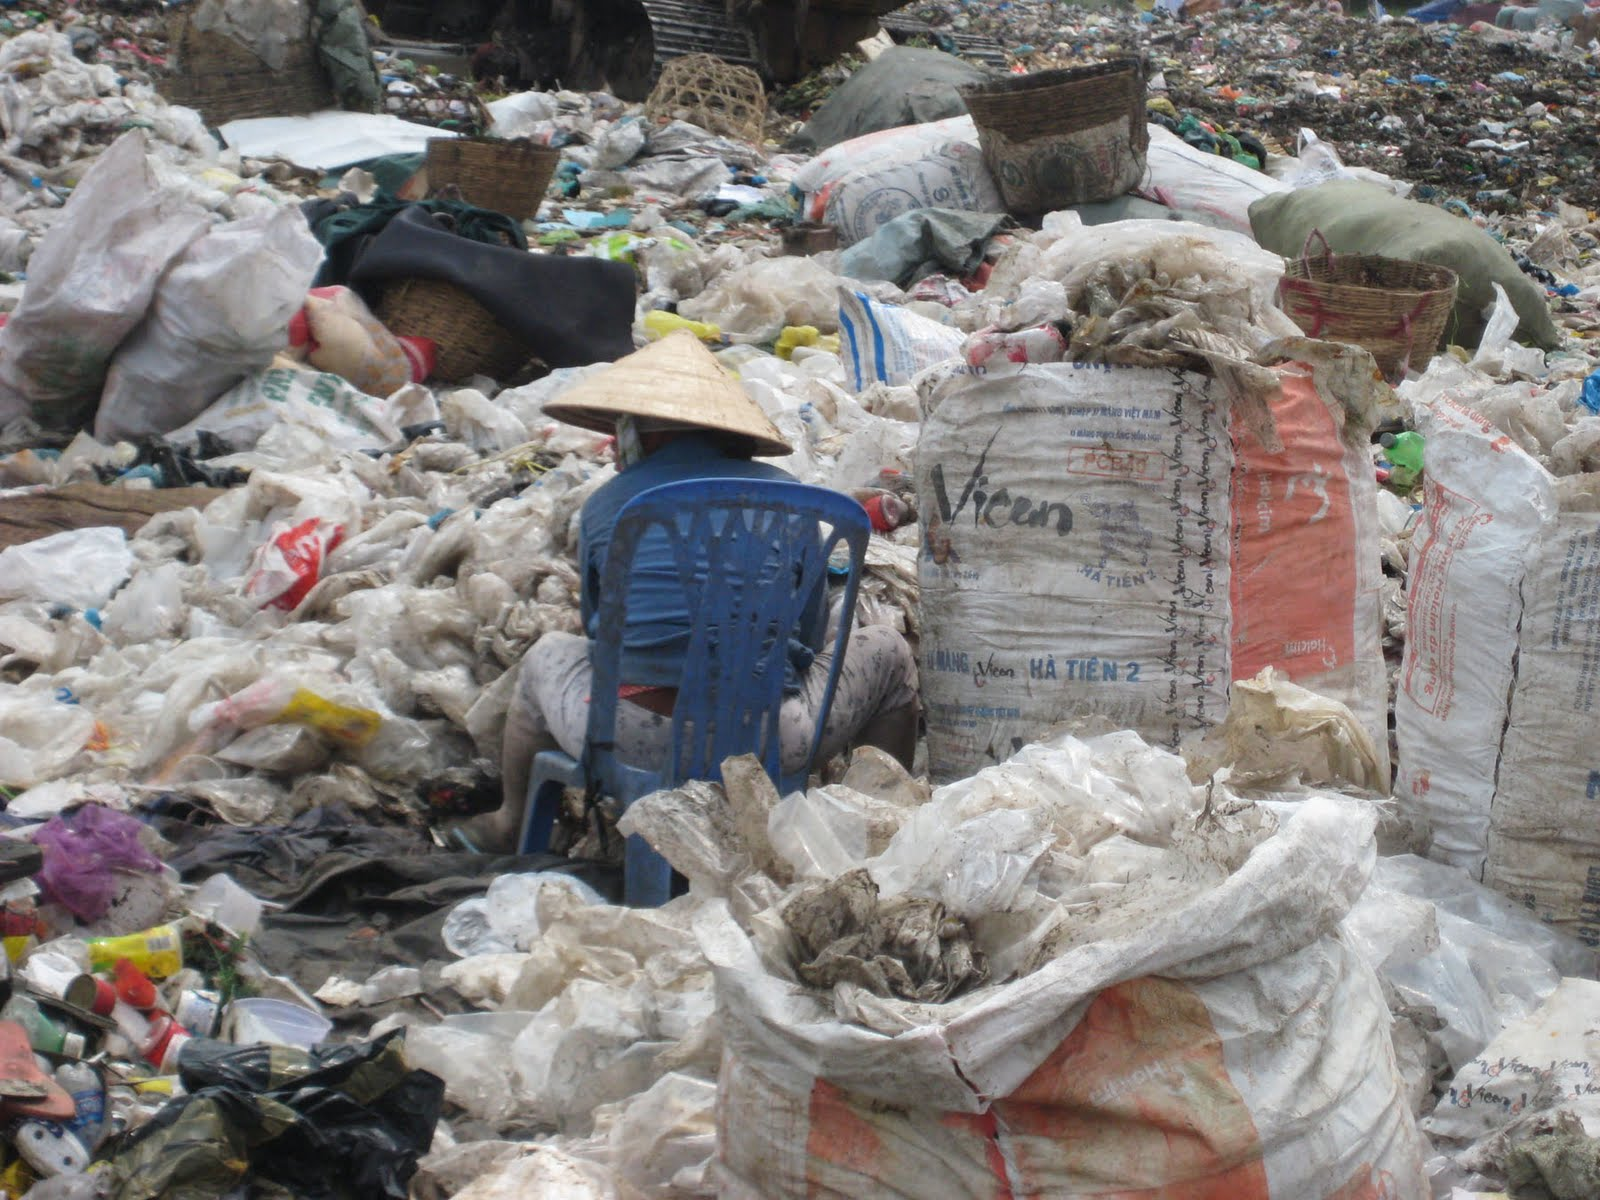 This image says it all for the people who live at the dump.